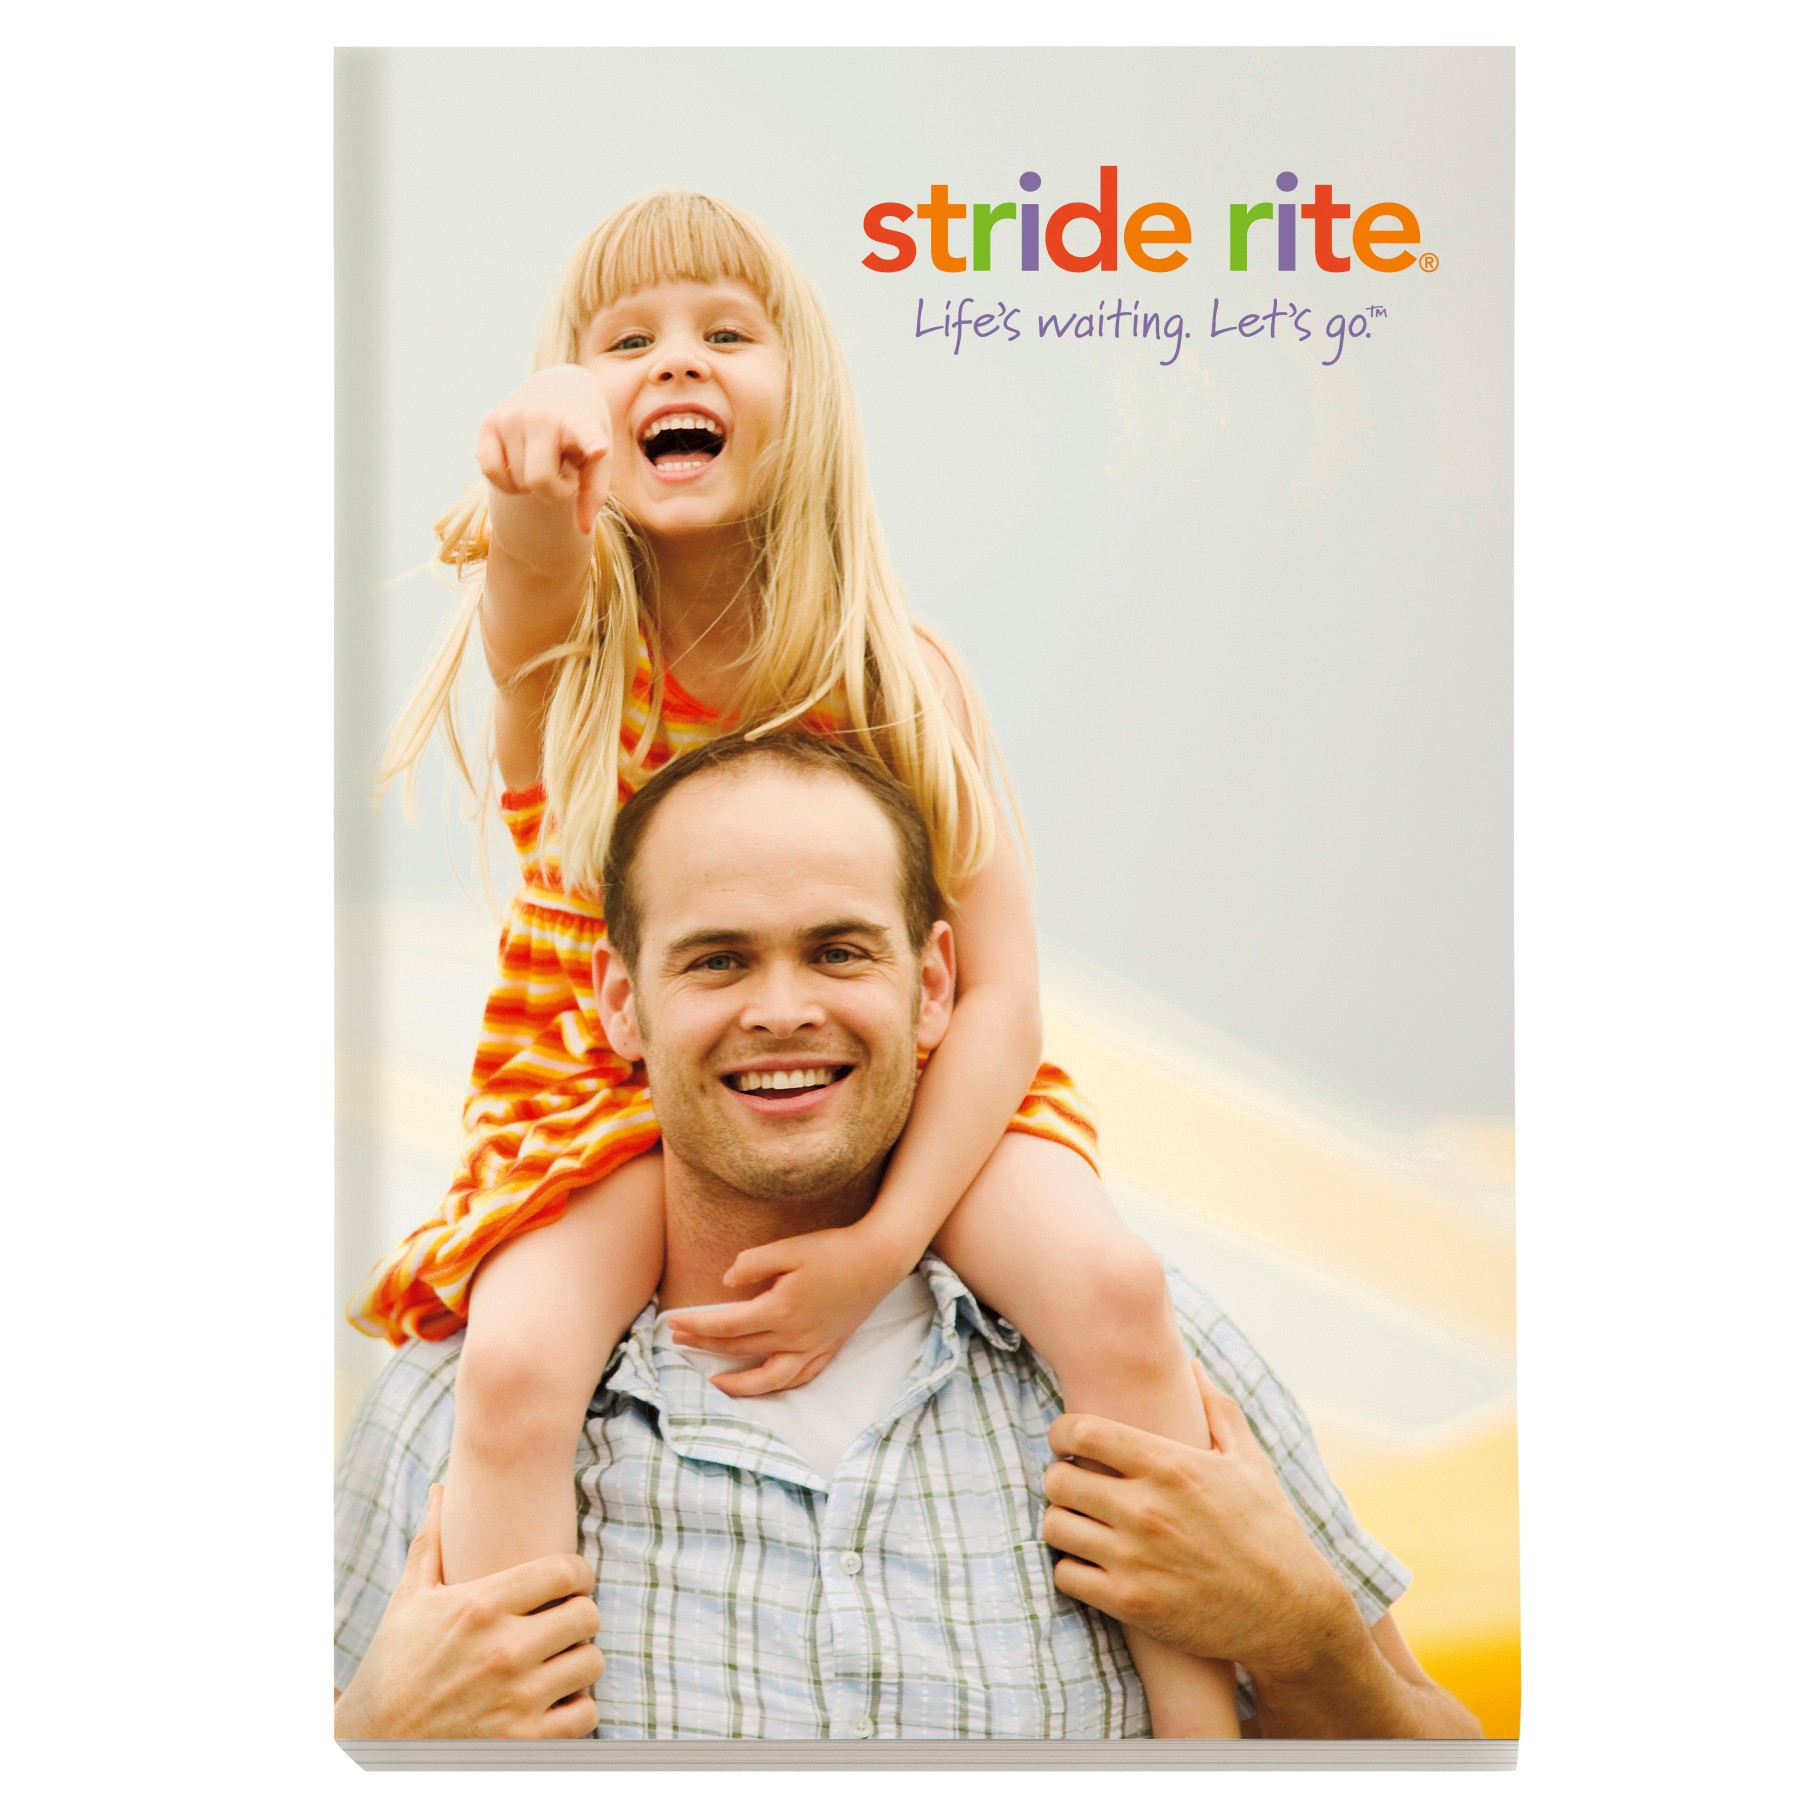 4-Color Process Eco Notebook, EC358, Full Colour Imprint